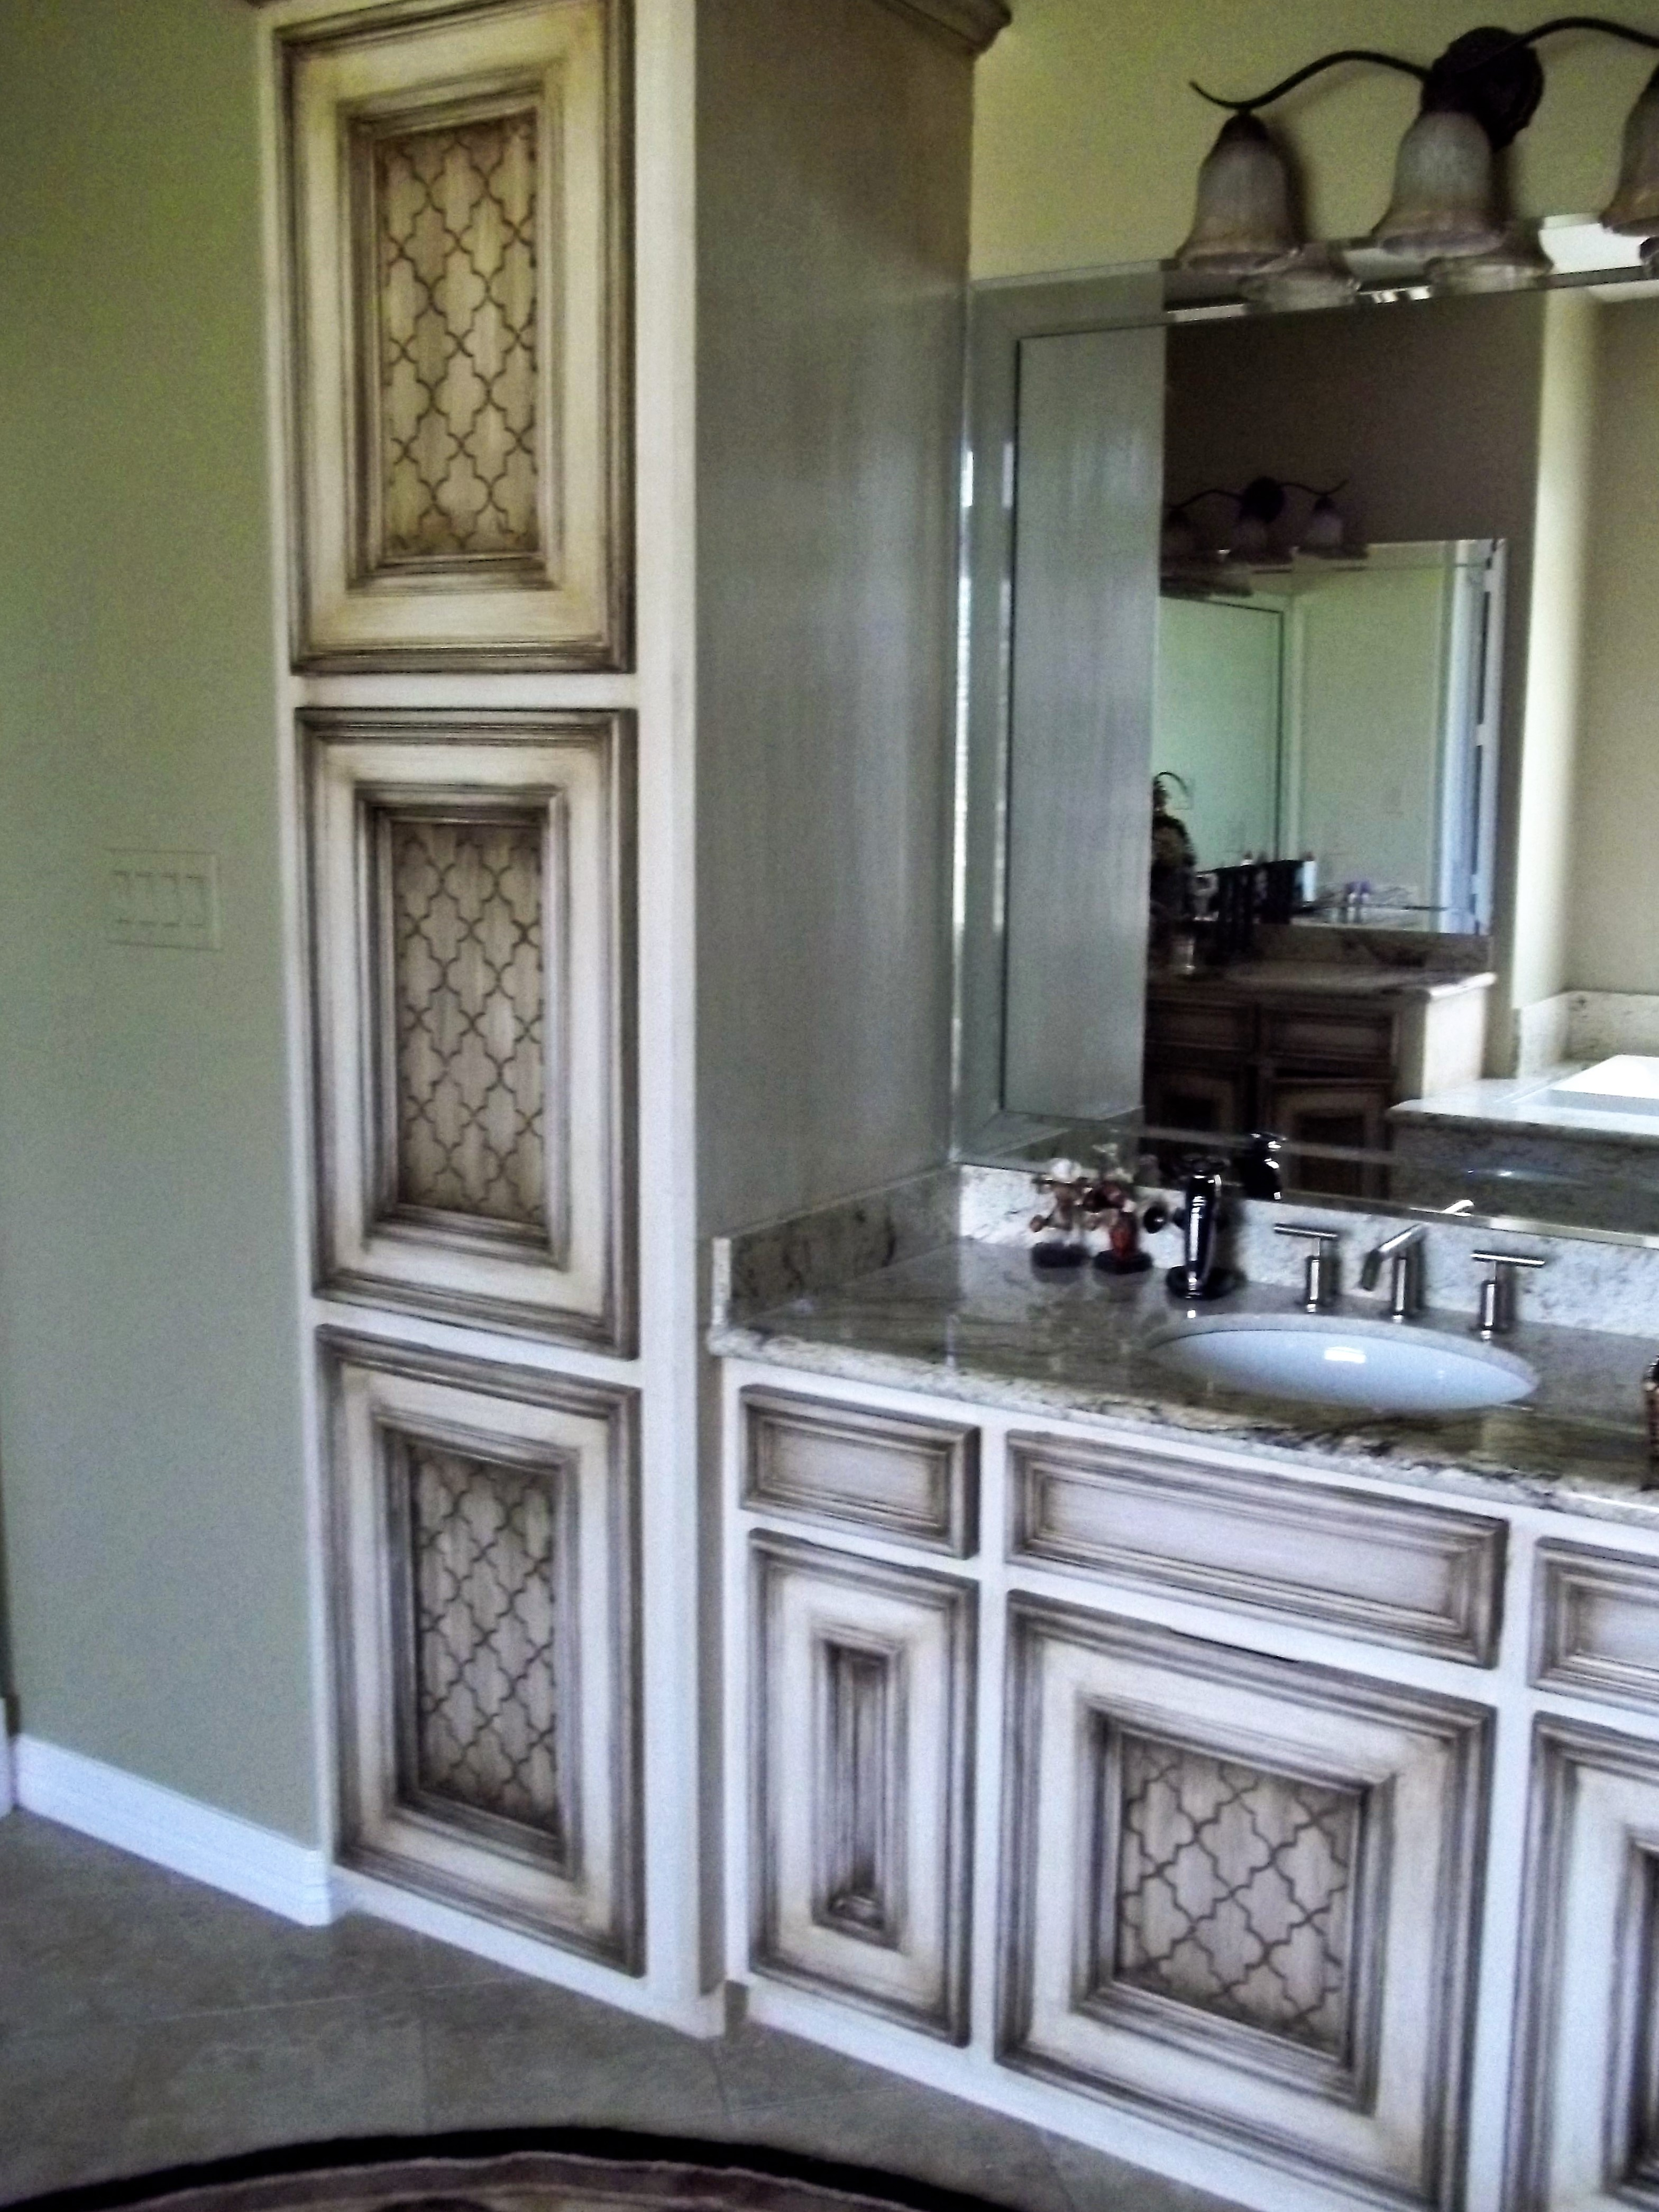 custom painted kitchen cabinets custom painted kitchen cabinets houston 832 257 9285 14385